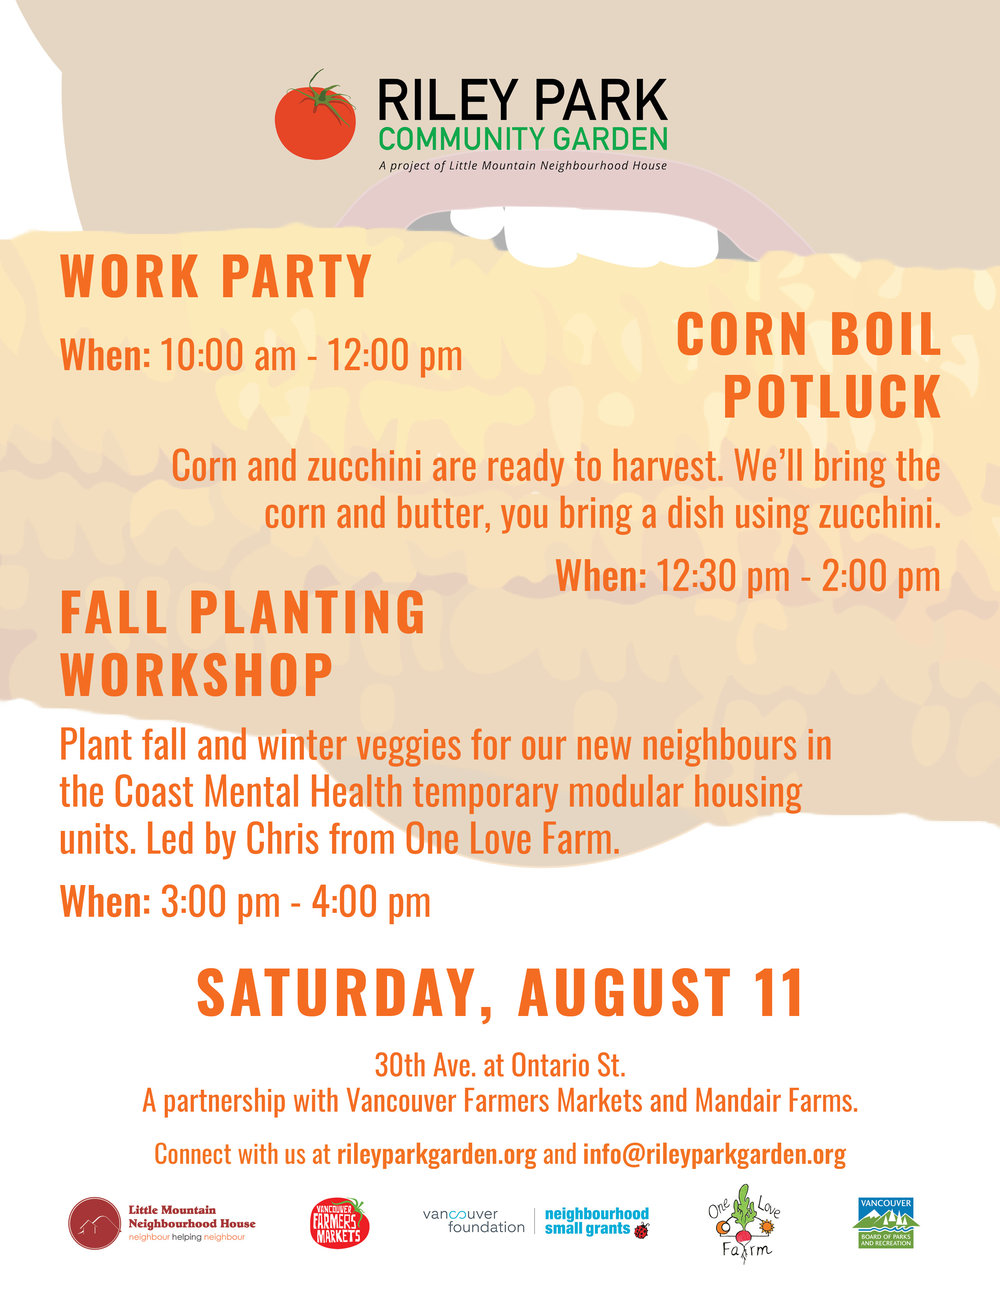 180801 FINAL 3 AUG 11 Corn Boil Poster_v2wl .jpg